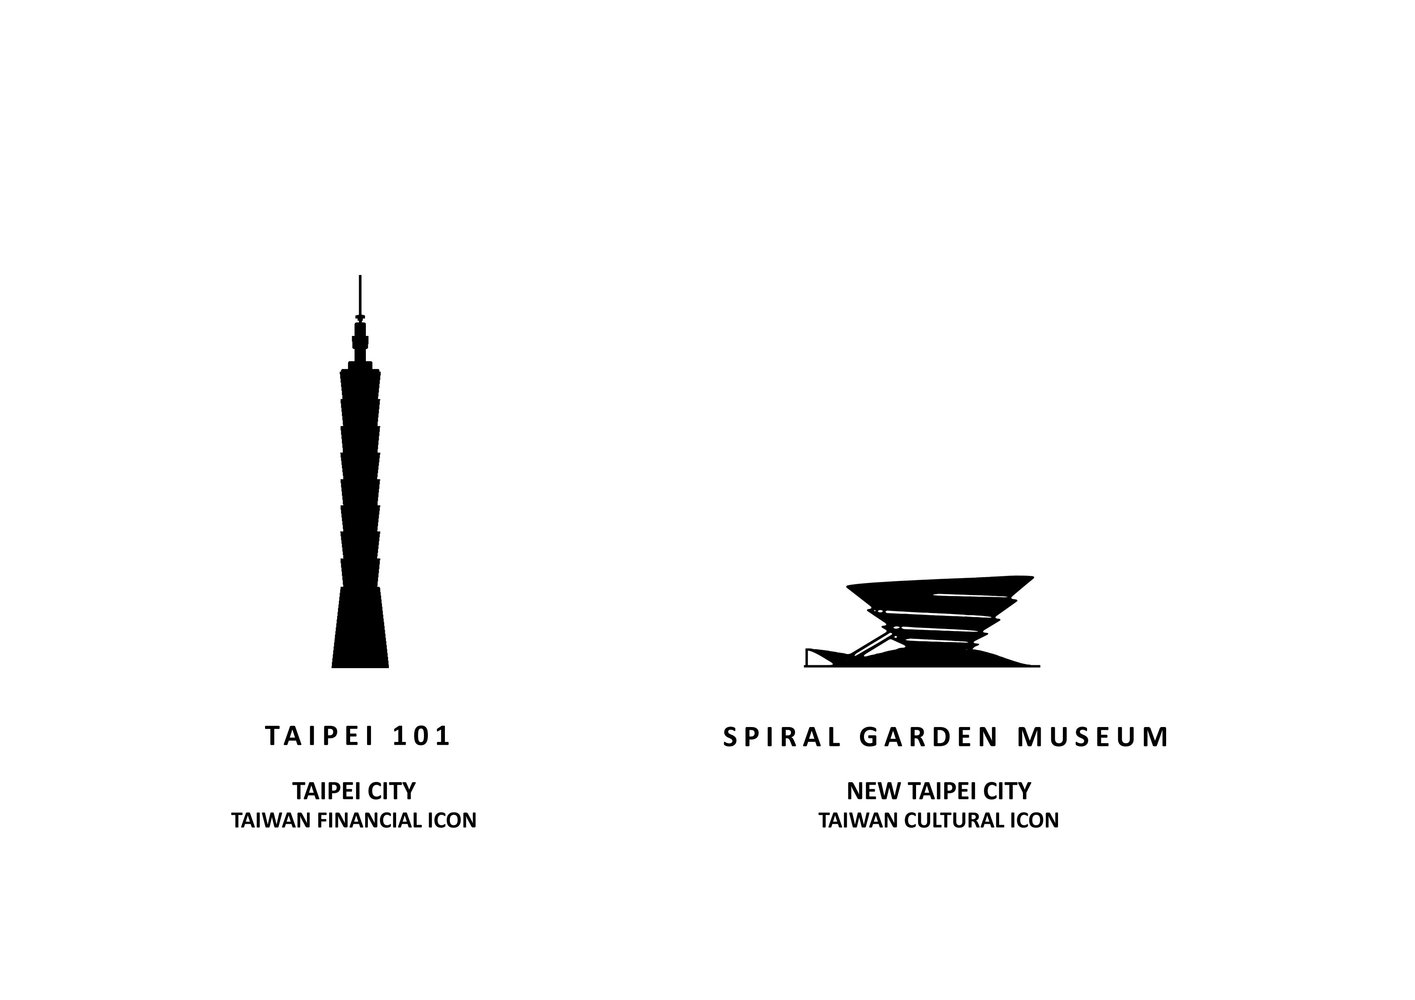 new taipei city museum of art competition proposal influx studio icon concept diagram [ 1415 x 1000 Pixel ]